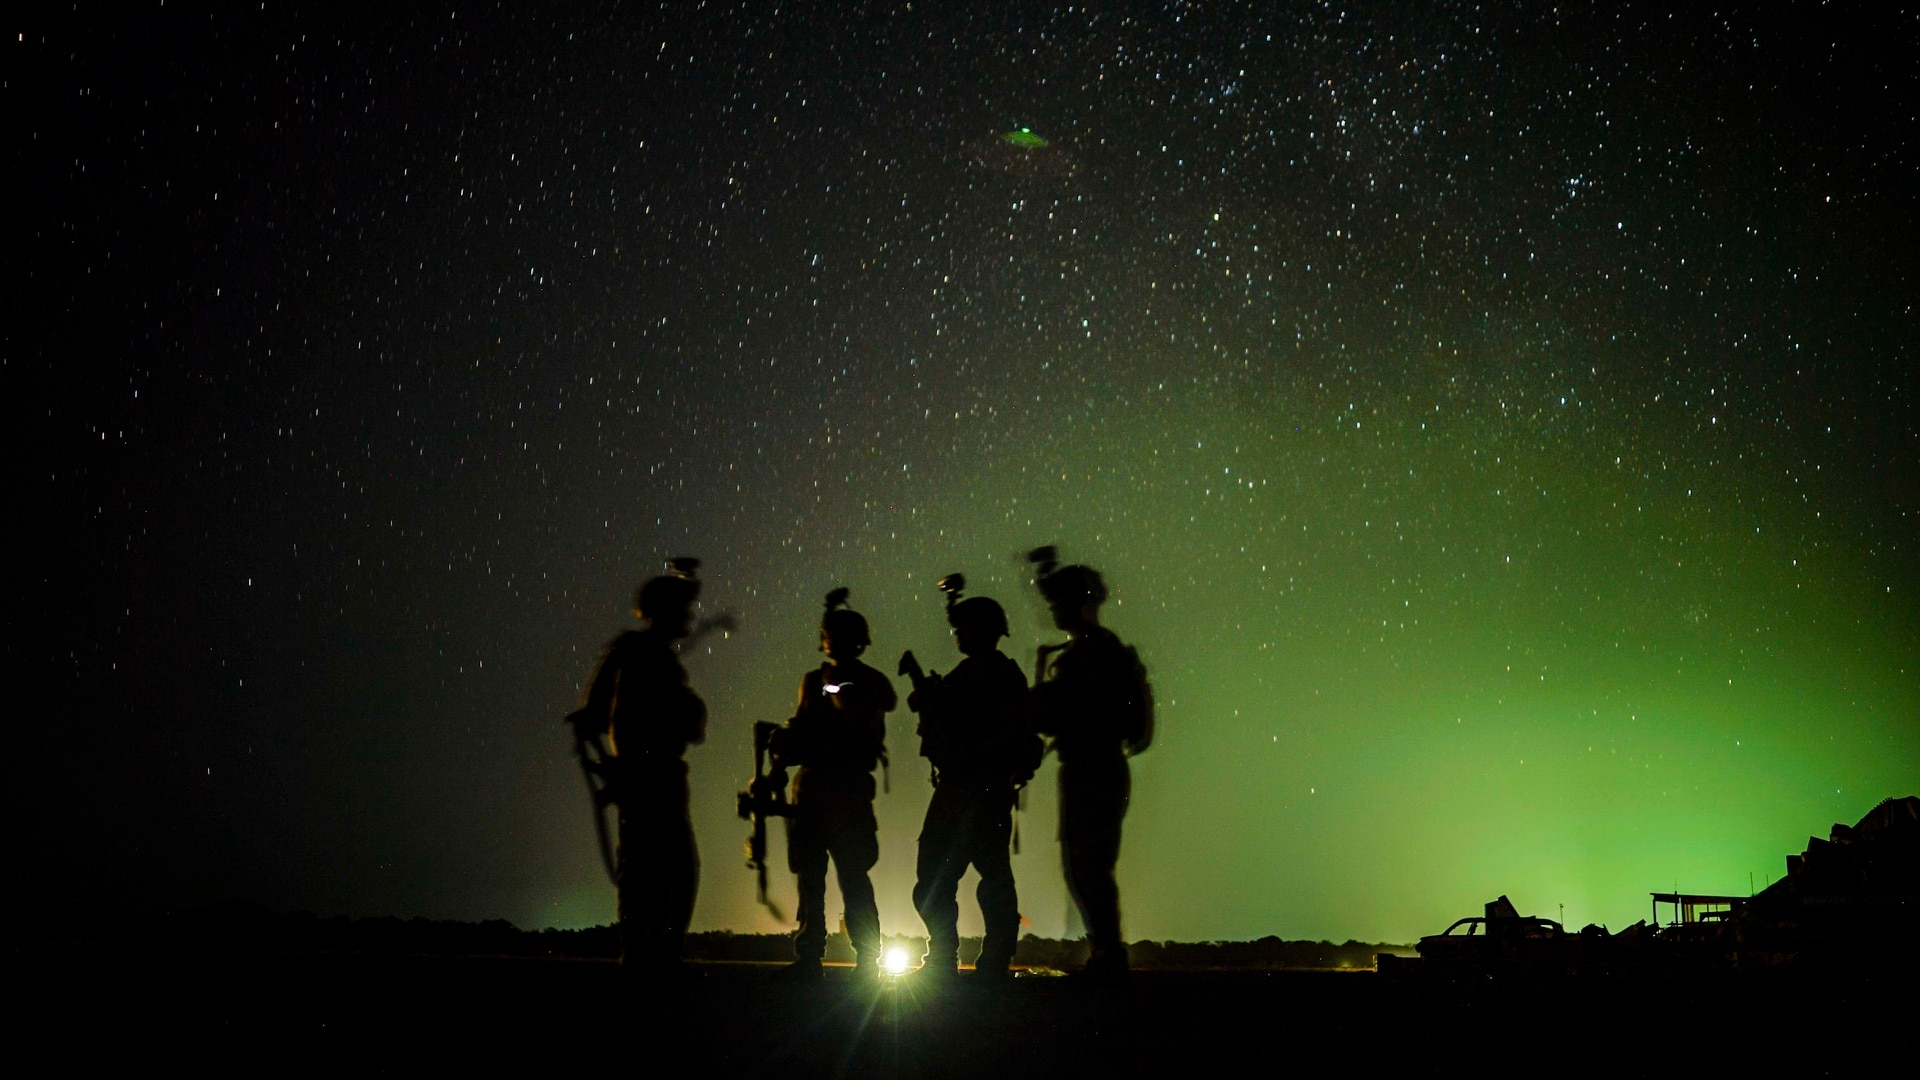 U.S. soldiers from the 101st Airborne Division standby for their night guard shift in east Africa, Kenya, Jan. 20, 2020. (Staff Sgt. Shawn White/Air Force)